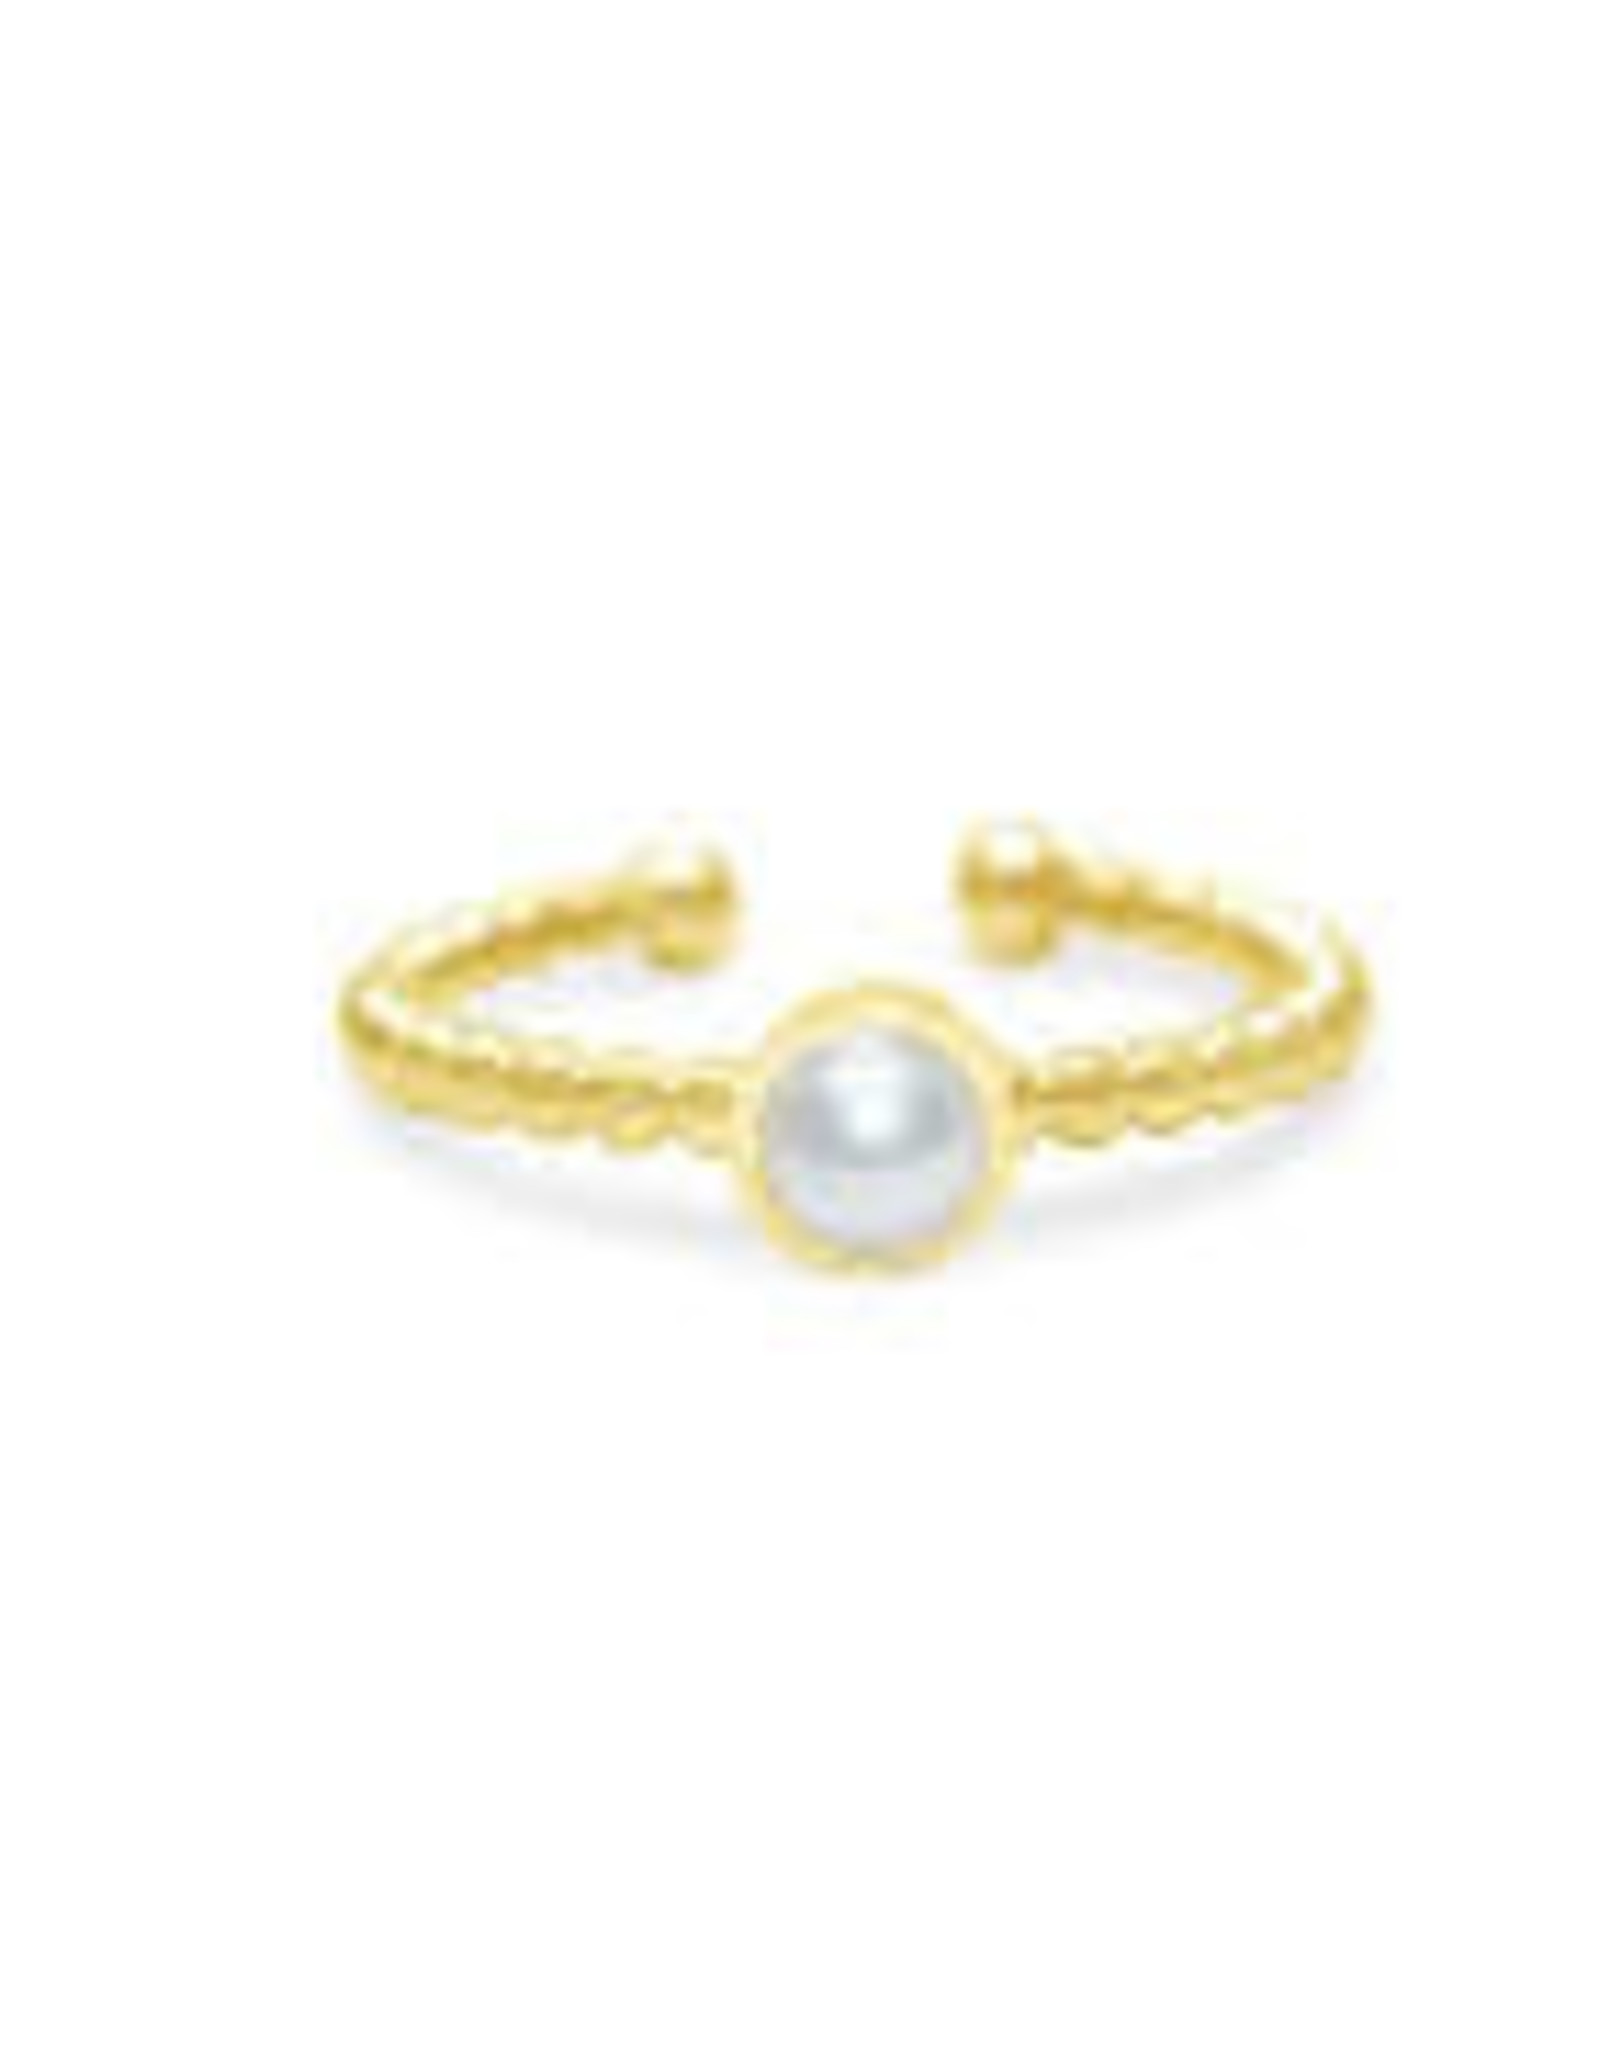 Stia Jewelry Droplet Wire Ring - Pearl, G